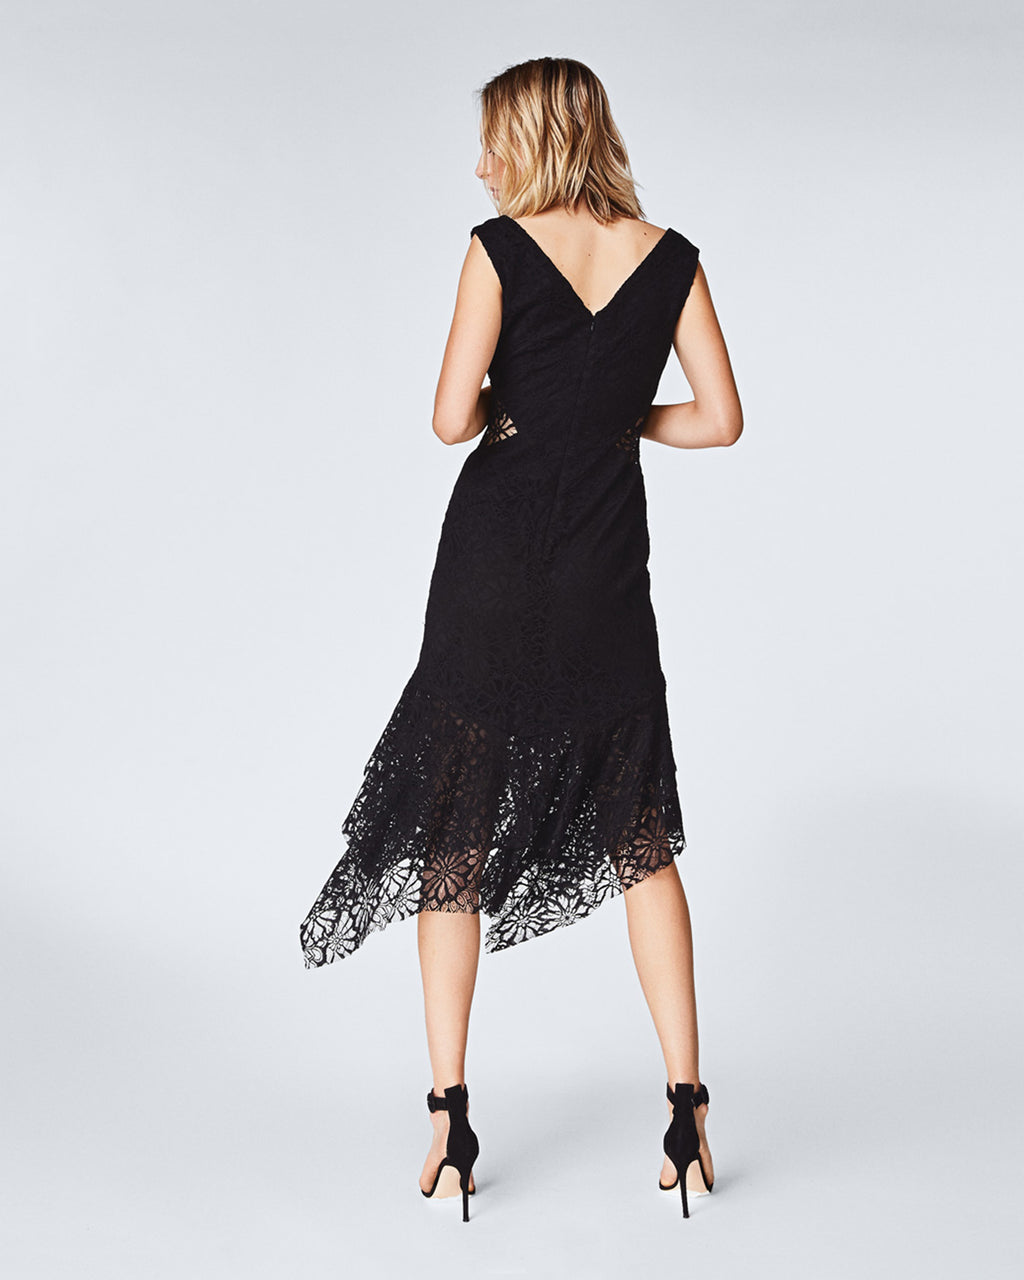 CF10227 - SUMMER LACE DRESS - dresses - midi - In an off the shoulder silhouette, this midi dress features white lace with a contrasting black lining. The unlined dress falls to a mid-calf length at an asymmetrical hemline. Pair with a simple black sandal for a completed look. final sale